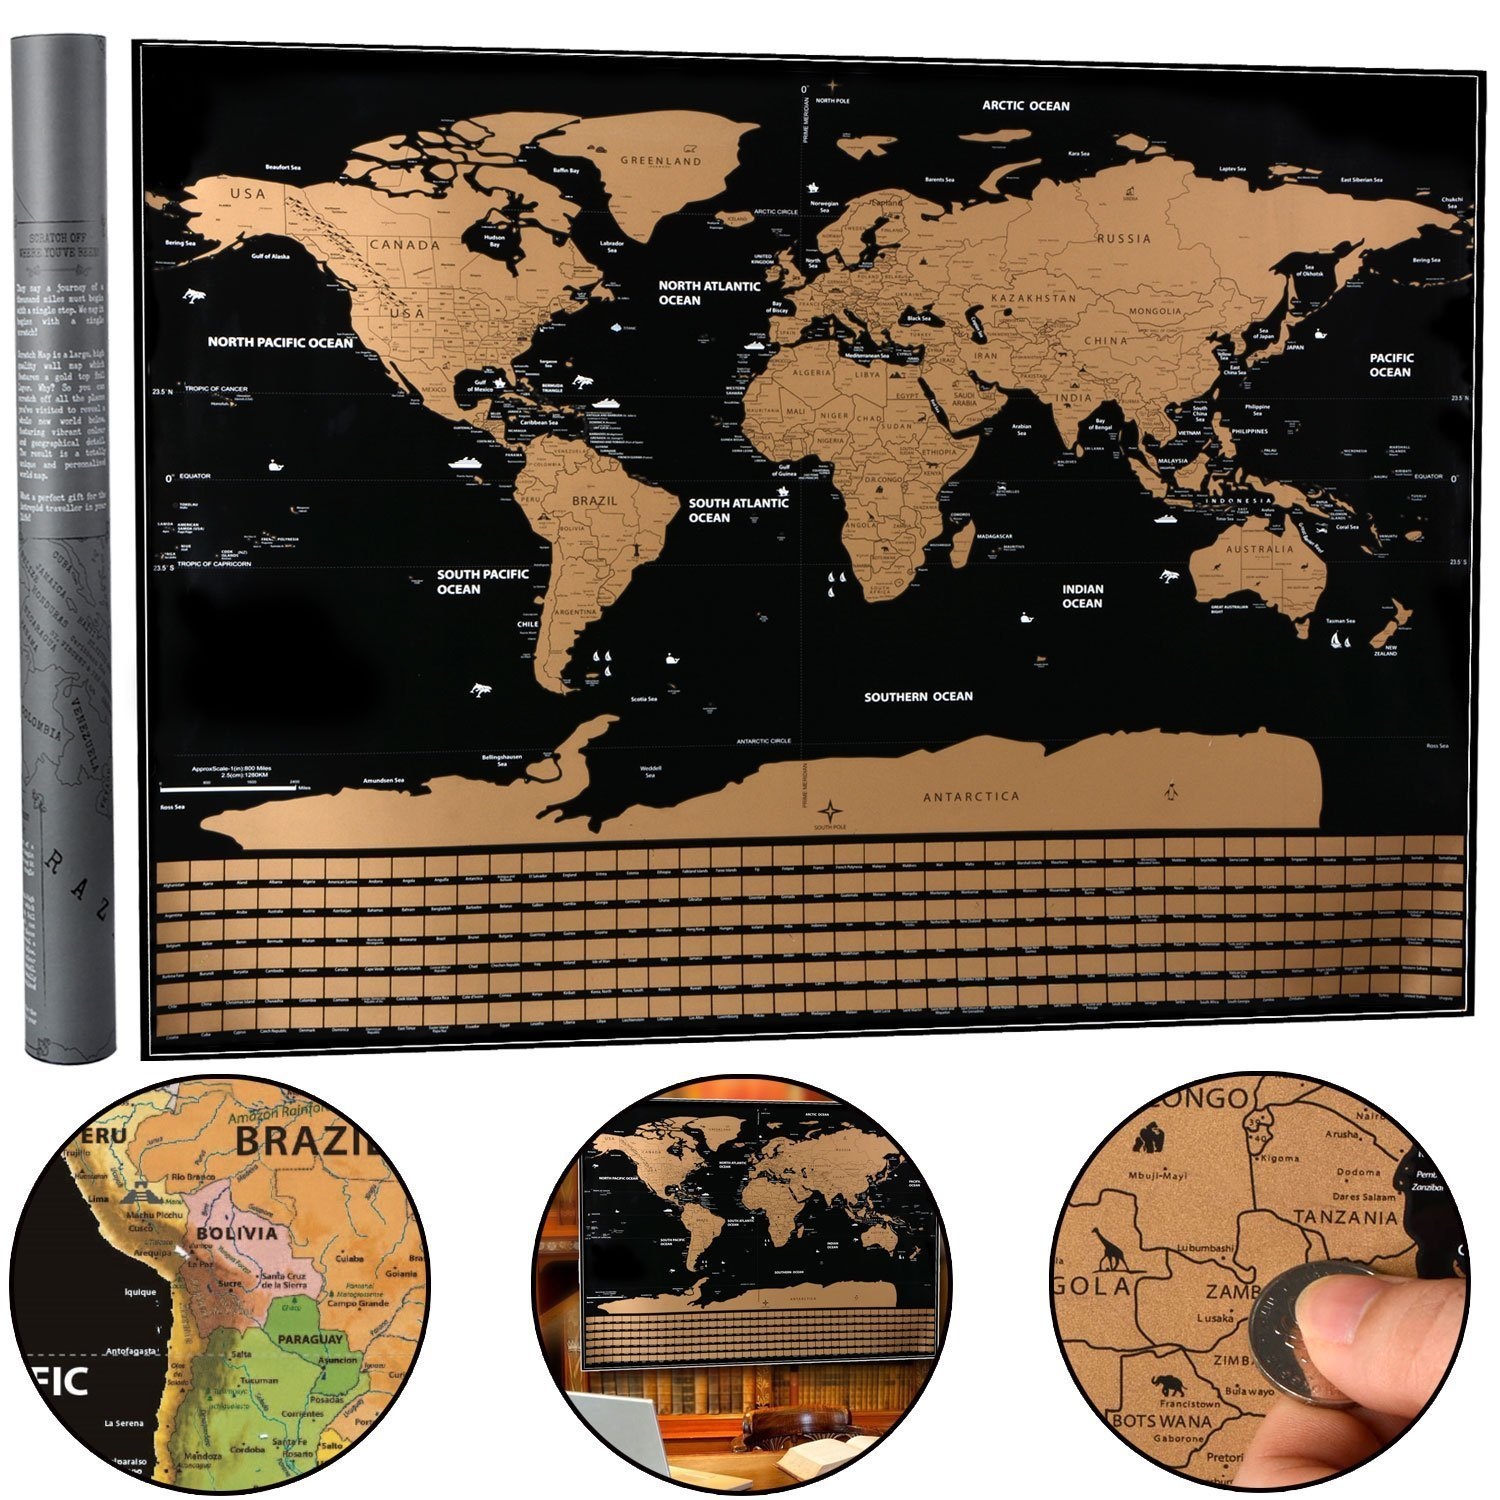 Scratch Off World Map - Moonvvin Travel Scratch Map Black and Gold Deluxe Edition,Bright Colors Premium Artwork Poster for Home Decor